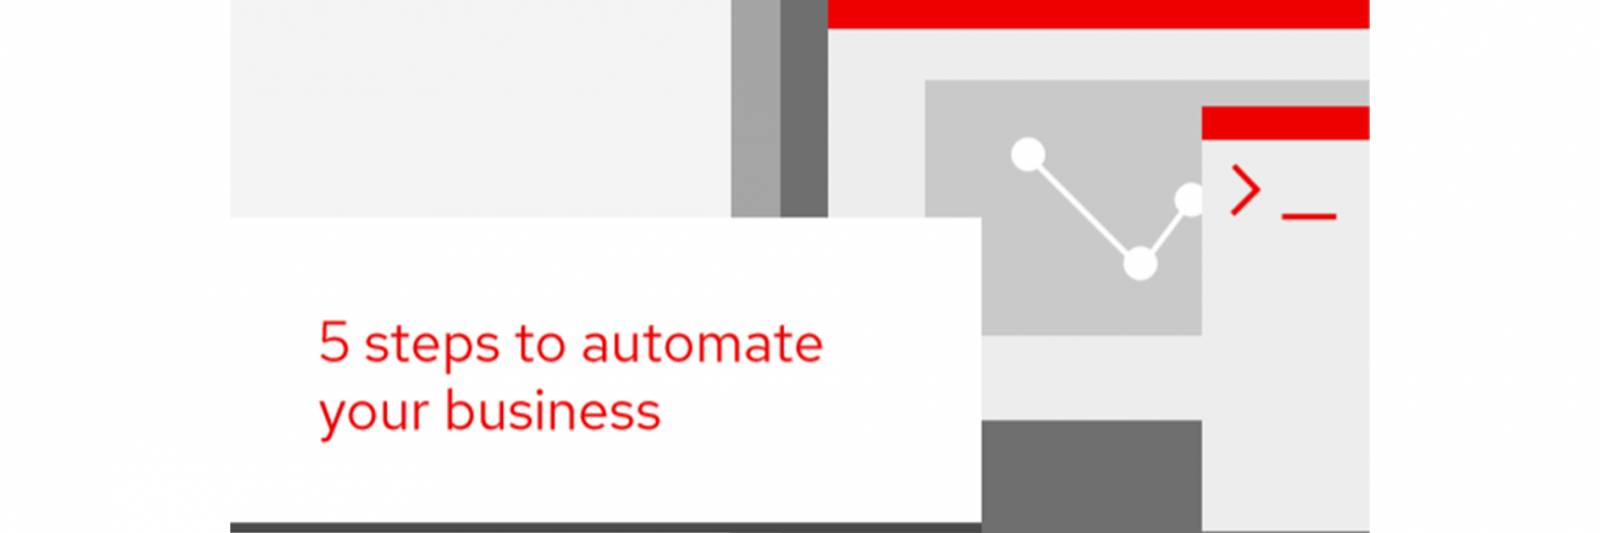 5 Steps To Automate Your Business